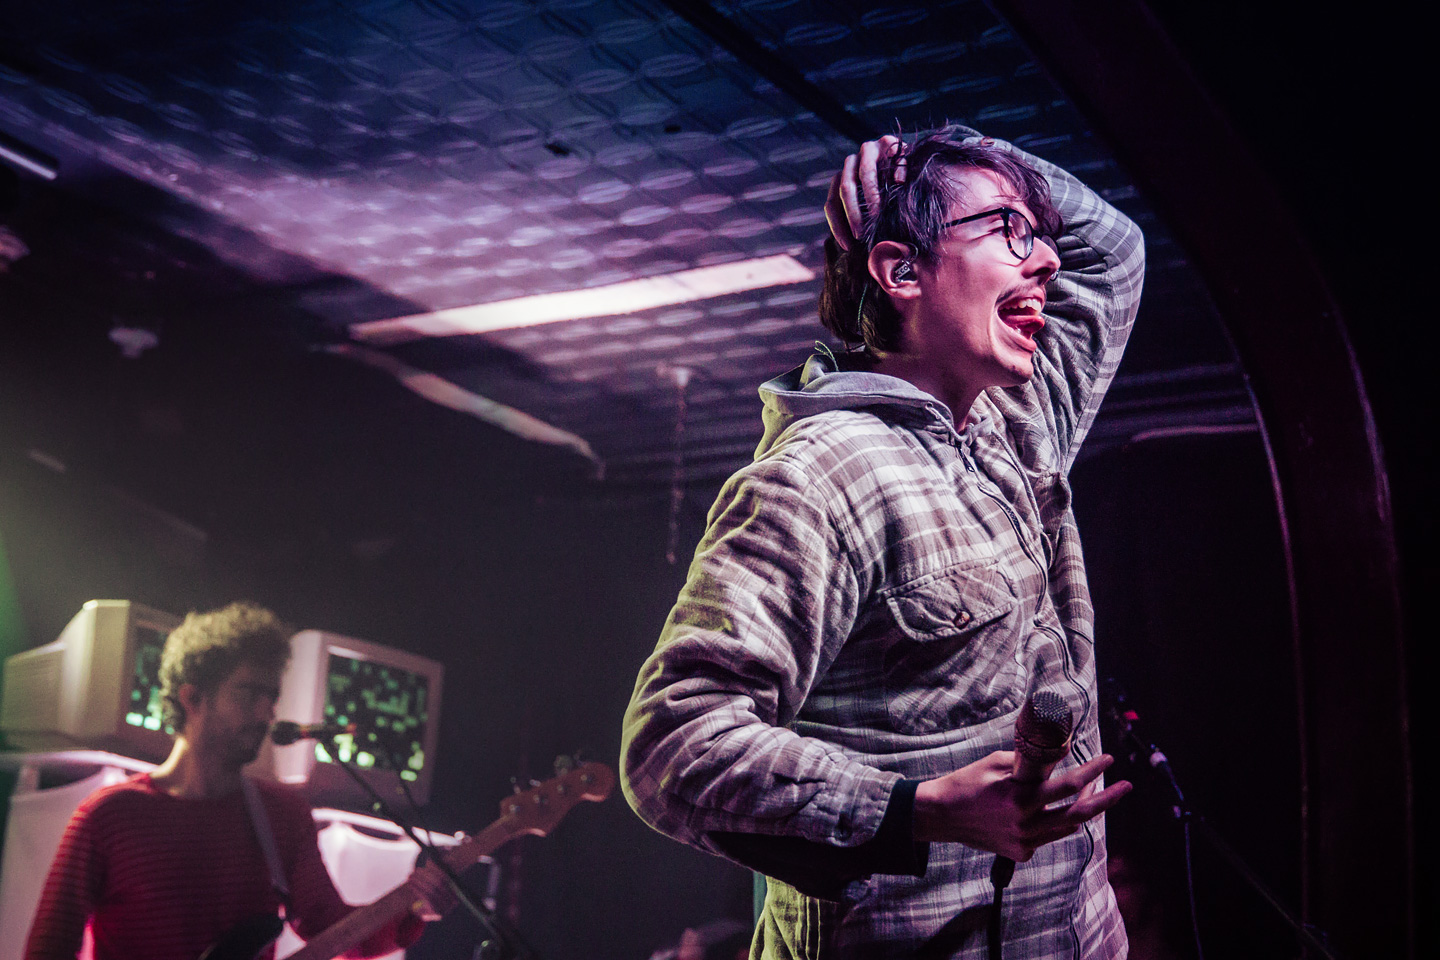 Joywave and KOPPS - Concert Photos from Denver's Globe Hall